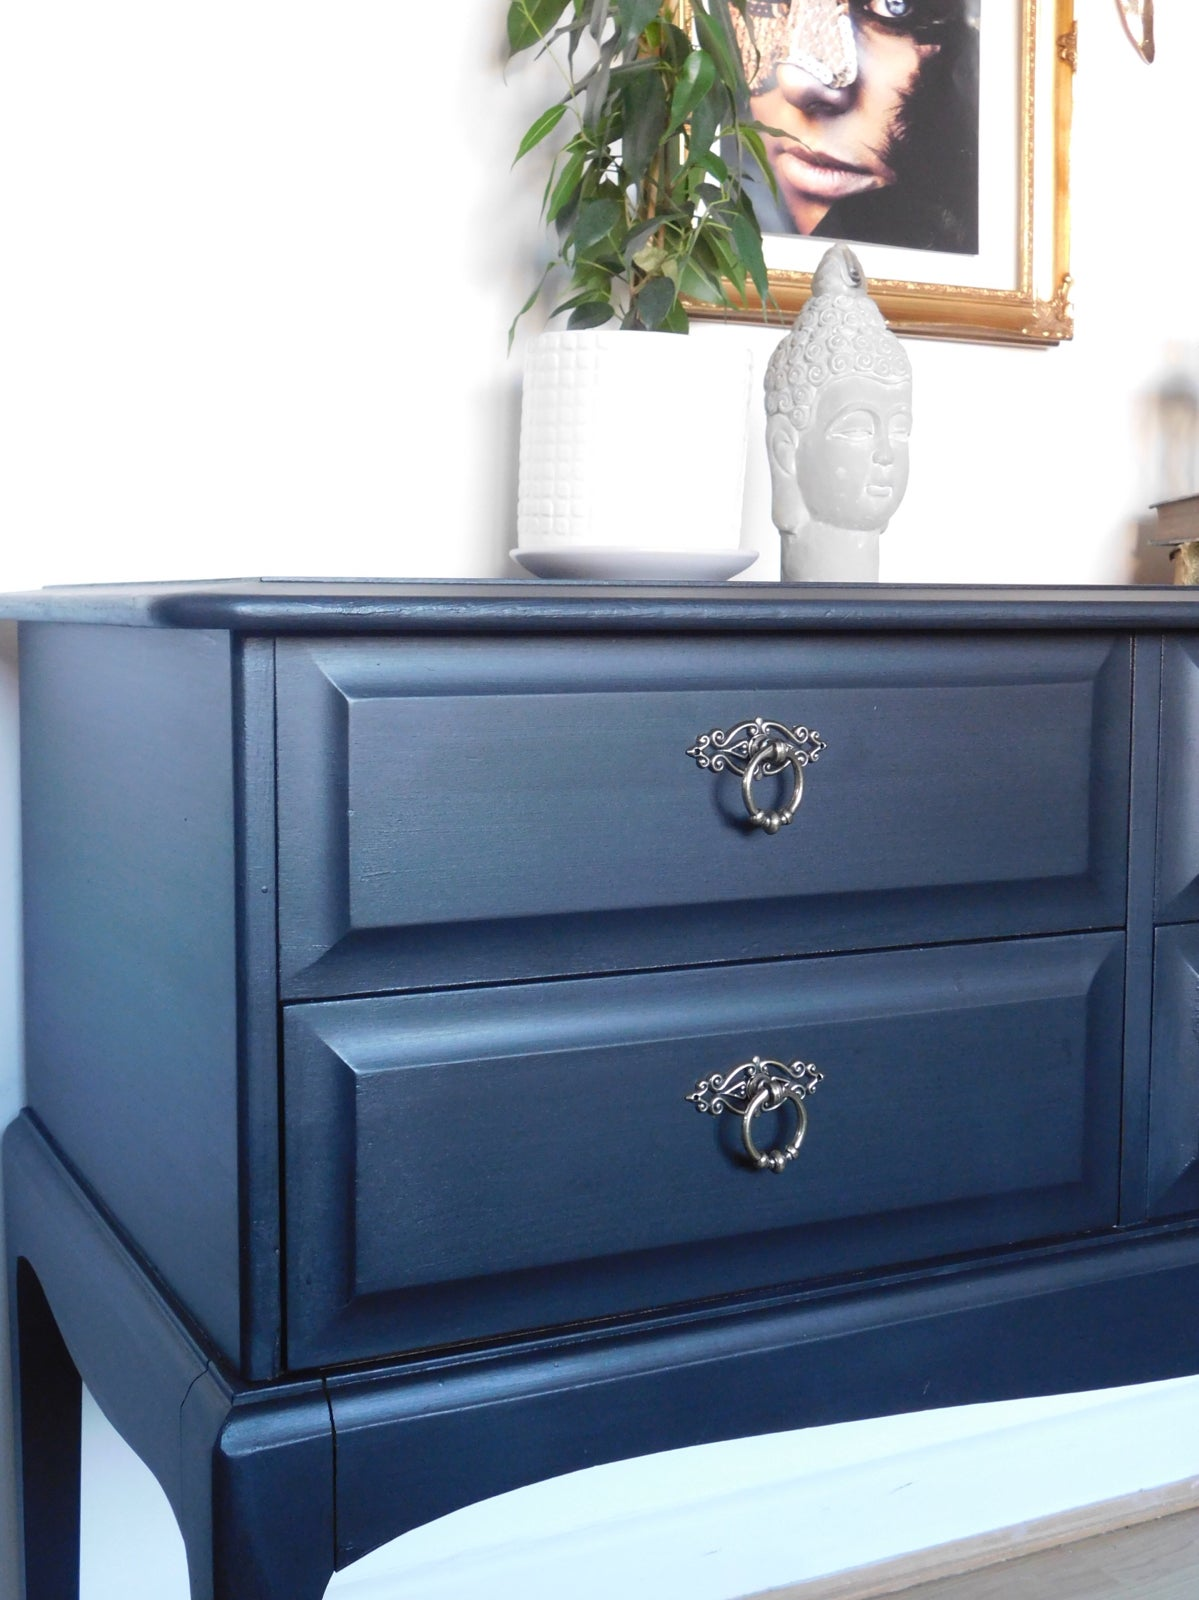 Image of A solid mahogany console/sideboard in black